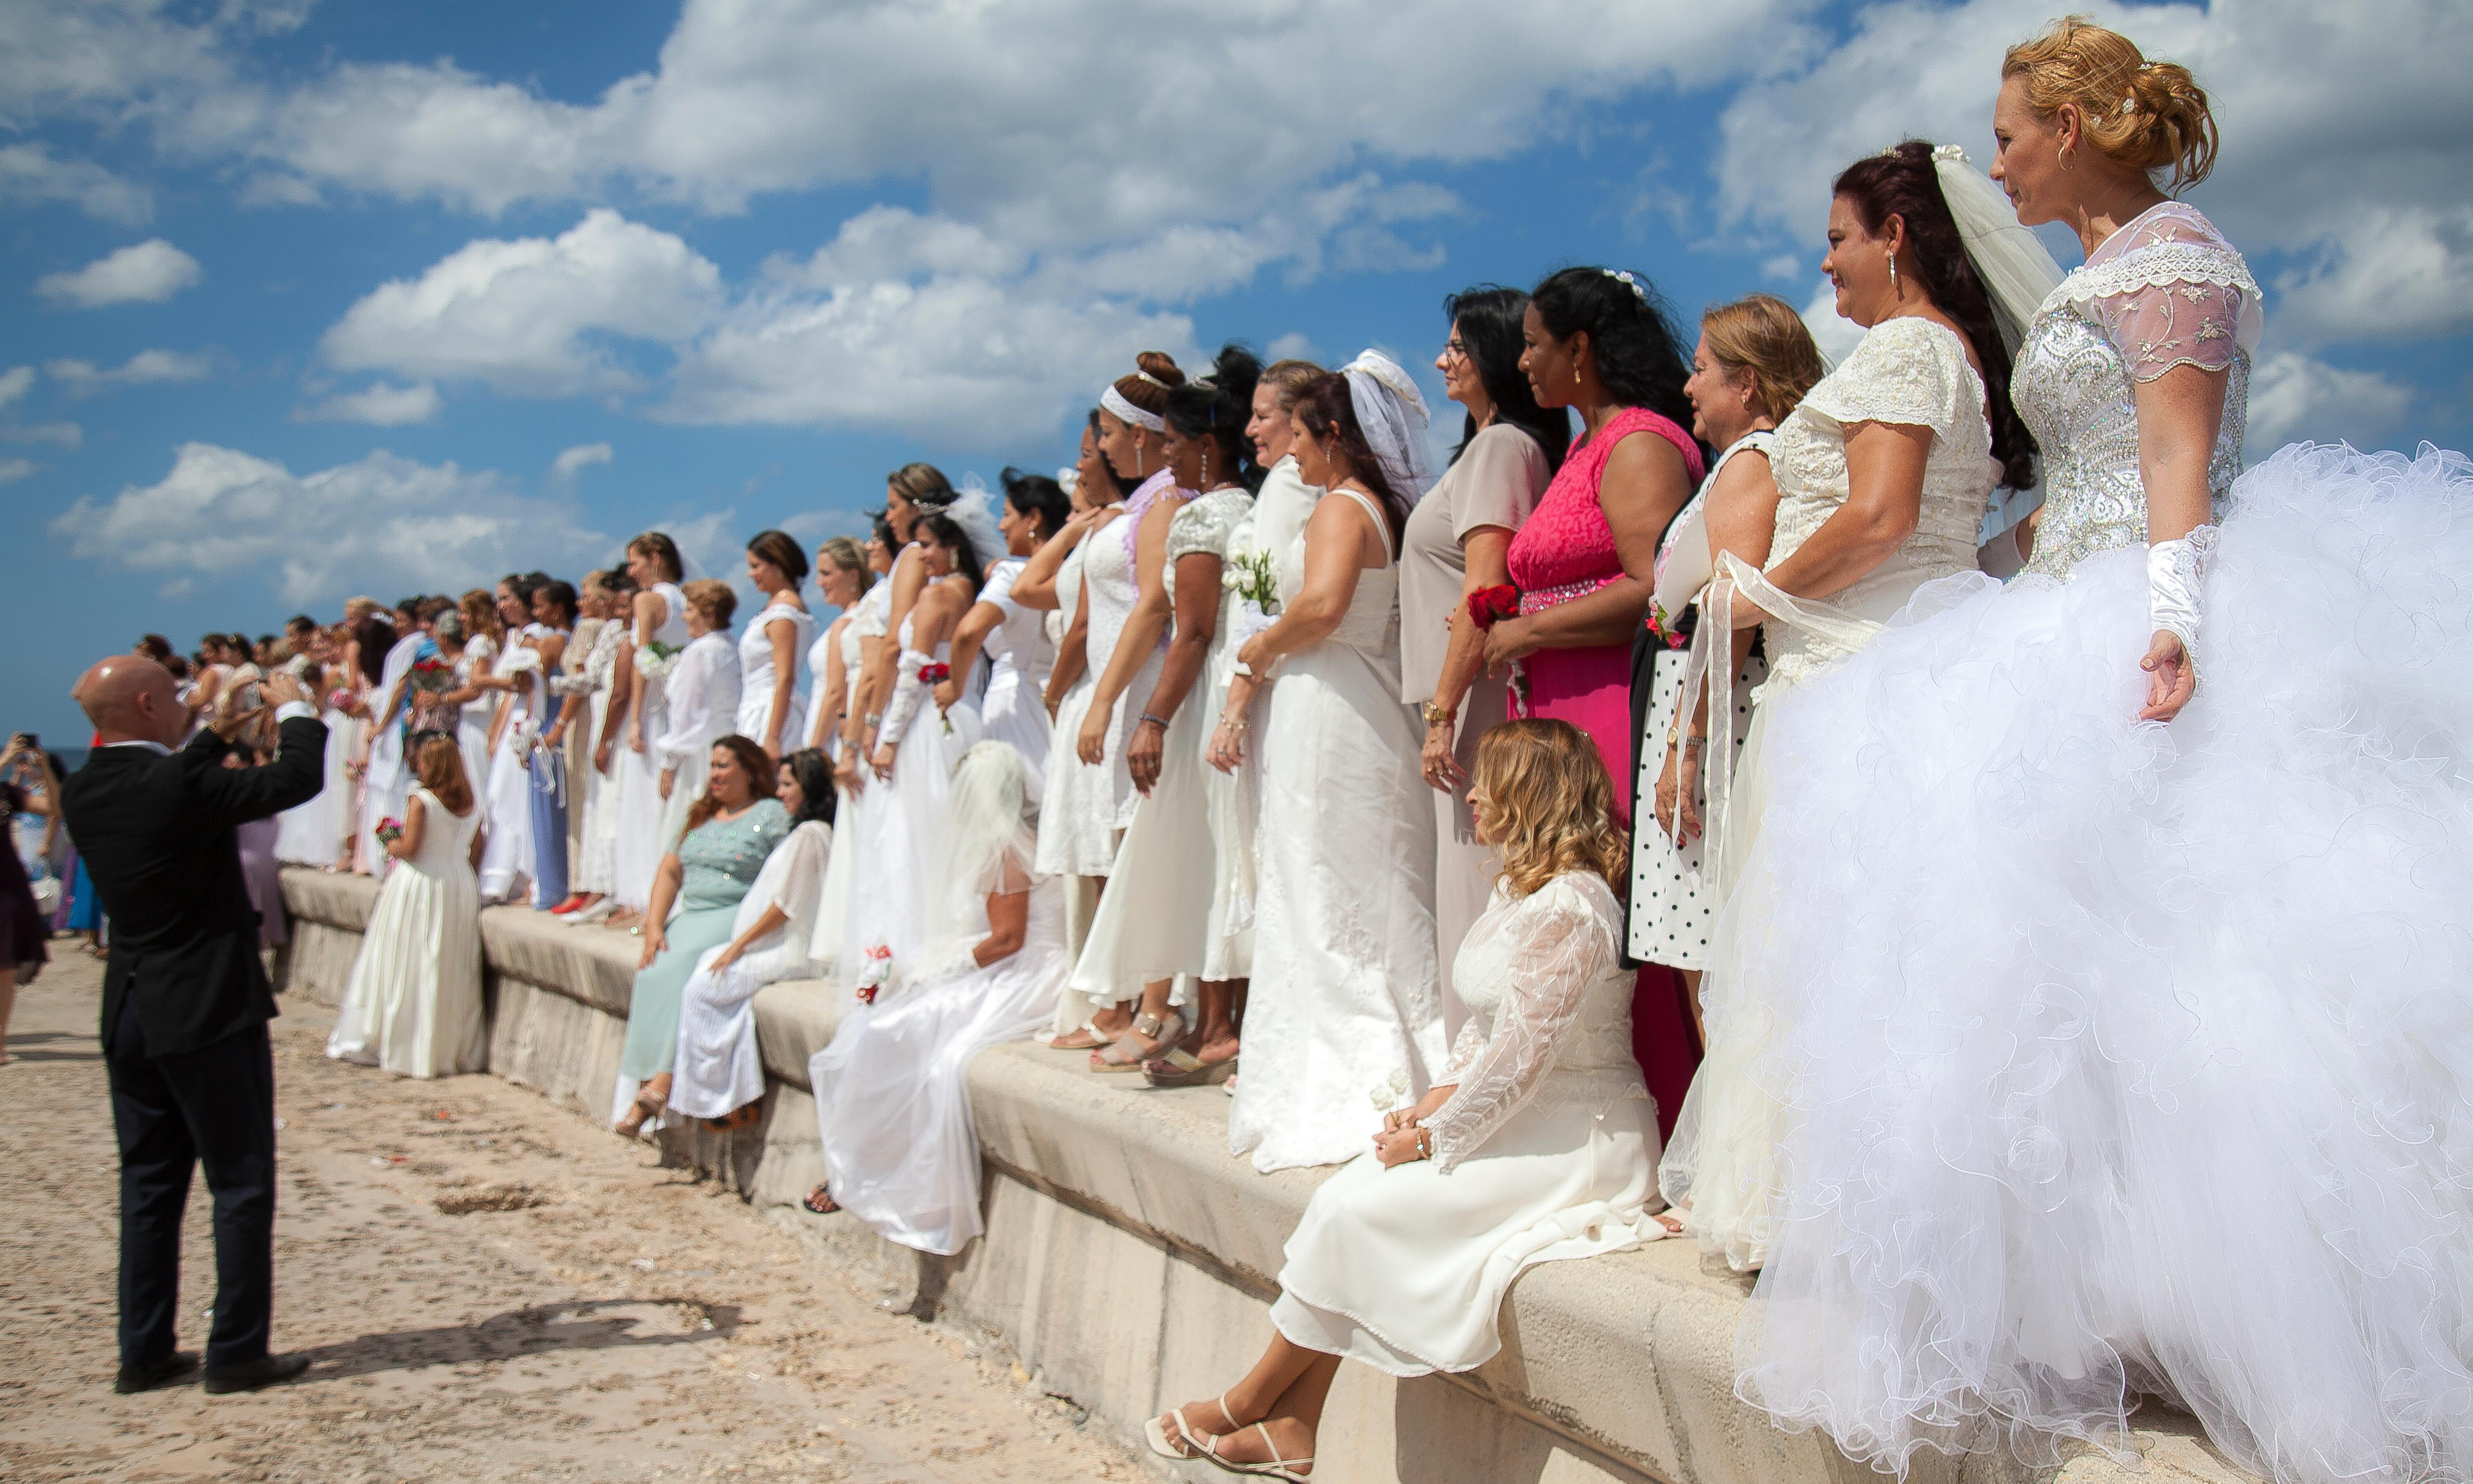 Cuba's evangelical alliance leads crusade against gay marriage